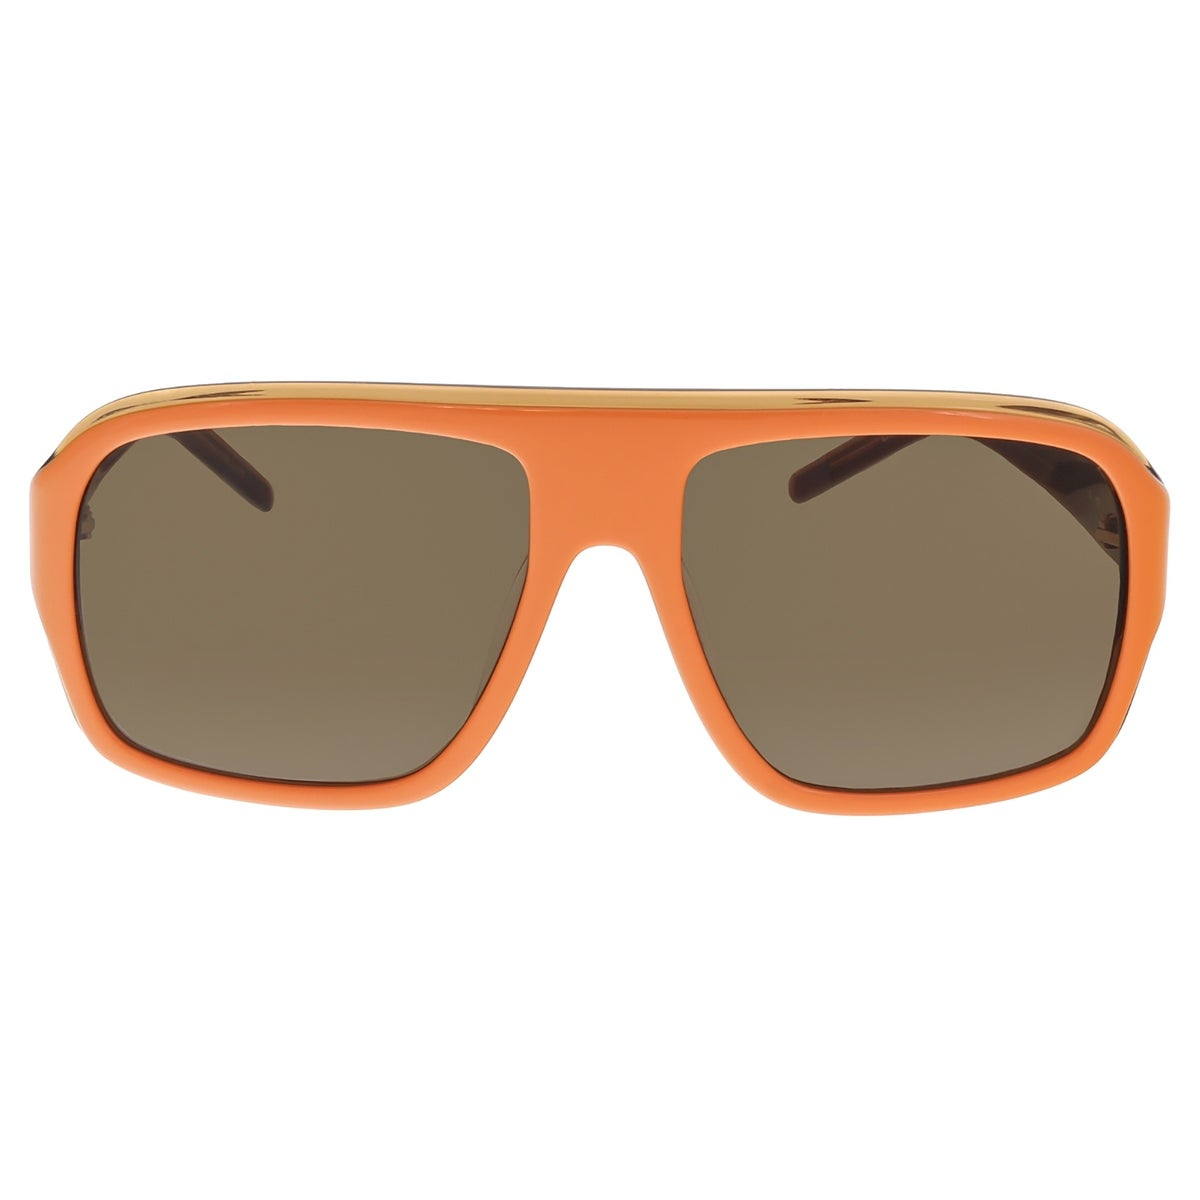 Shop lacoste l 643s 800 orange modified aviator sunglasses 57 17 135 free shipping today overstock 13402587